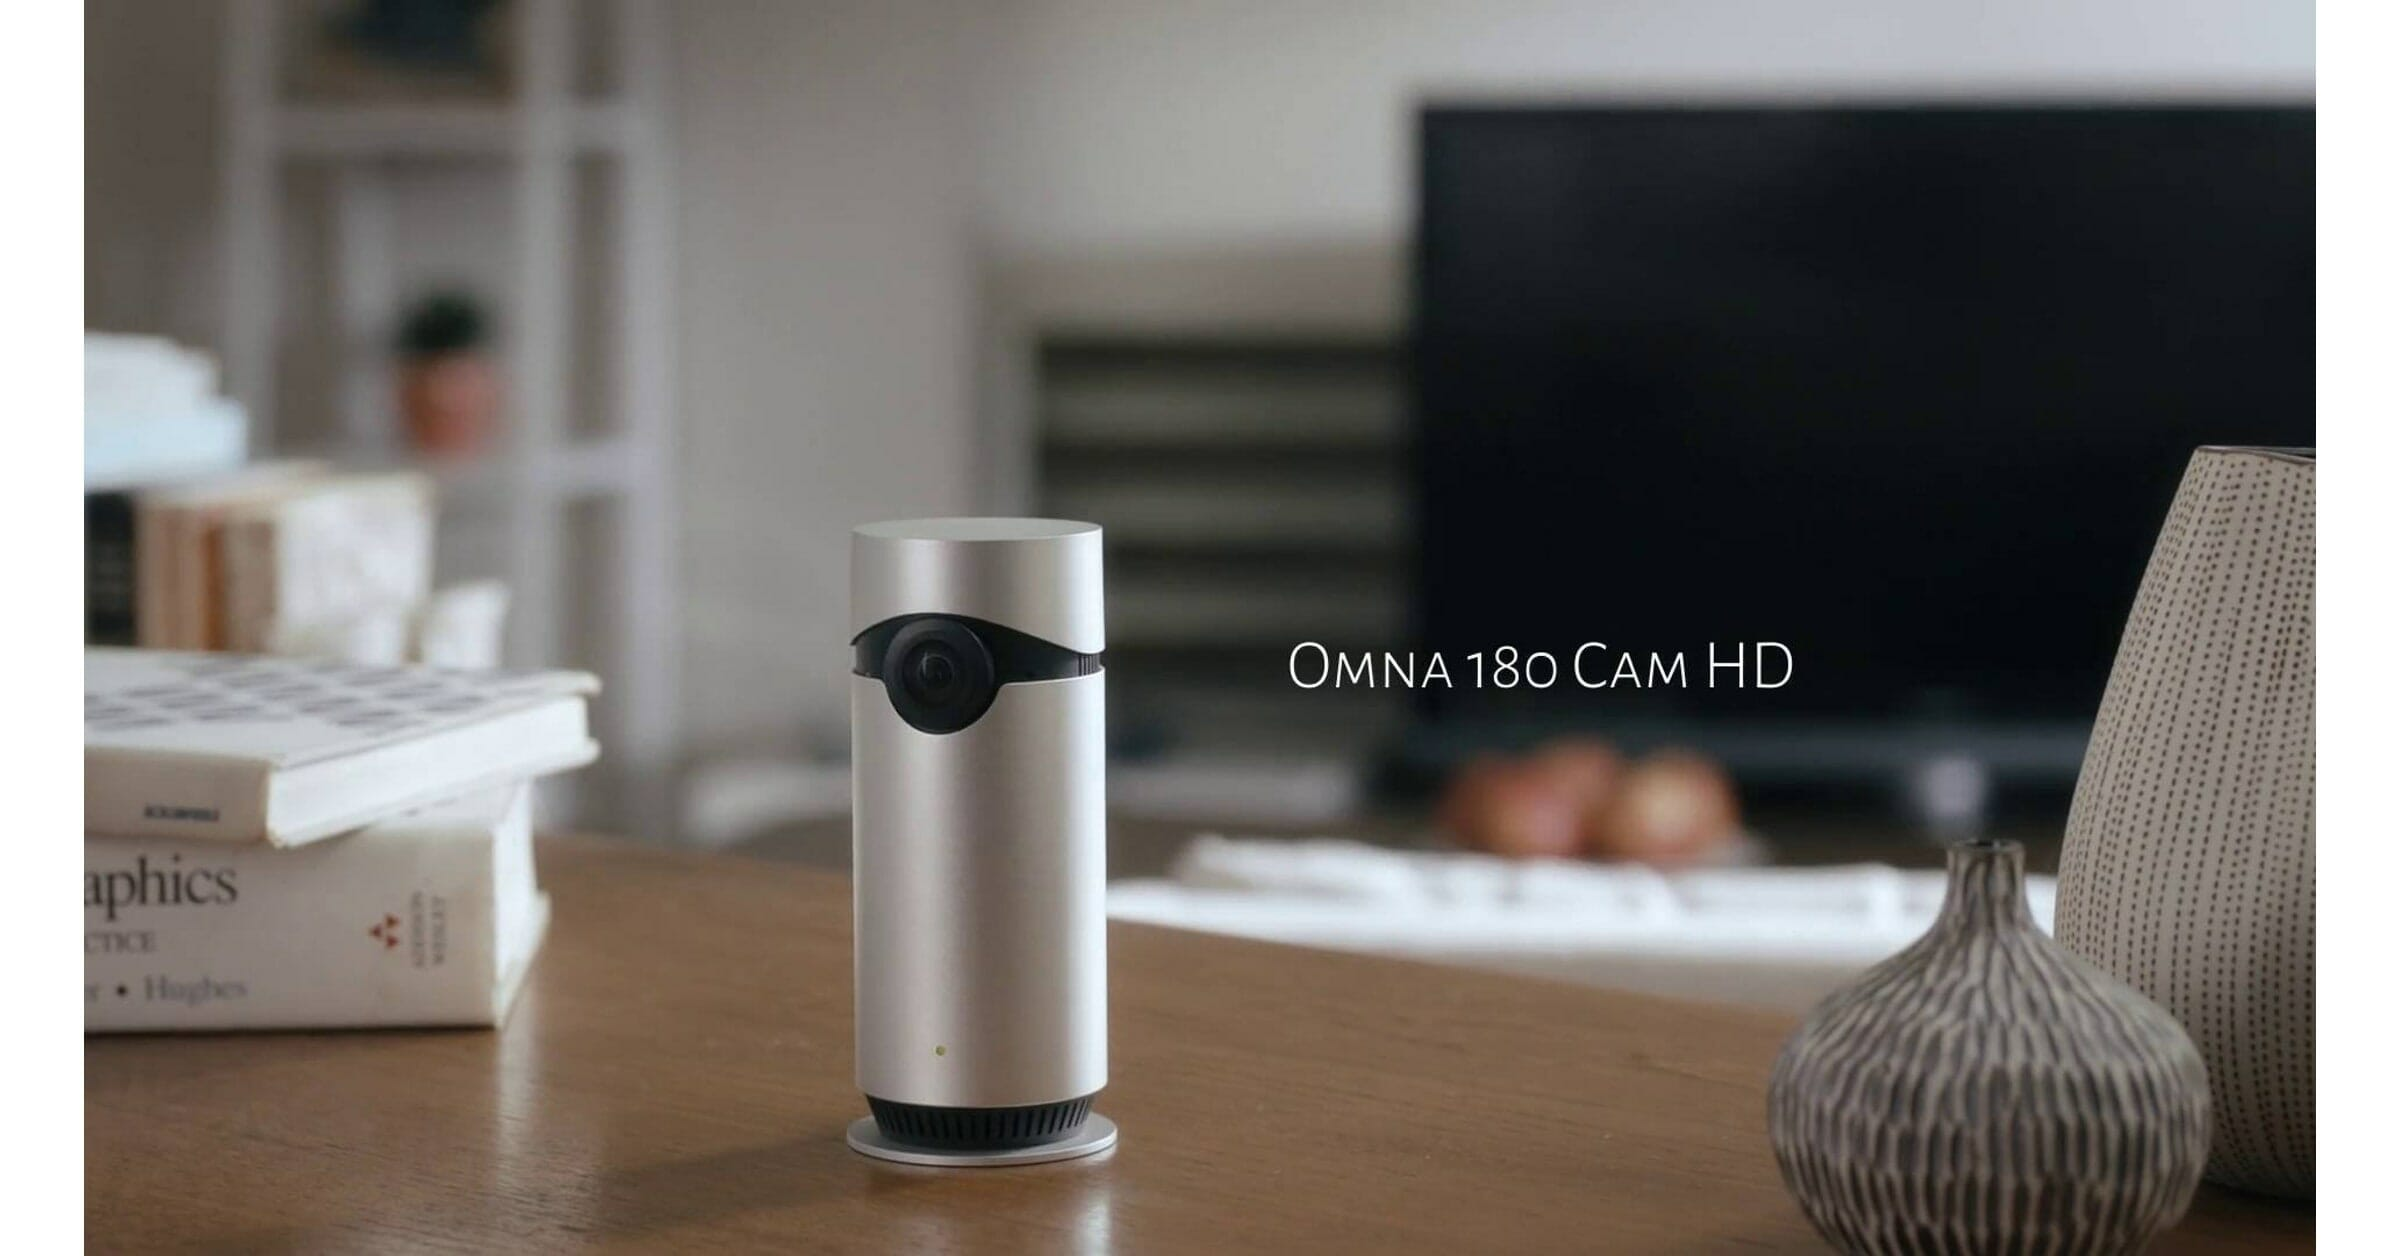 Home security camera review - D-Link Omna 180 Cam - Apple HomeKit